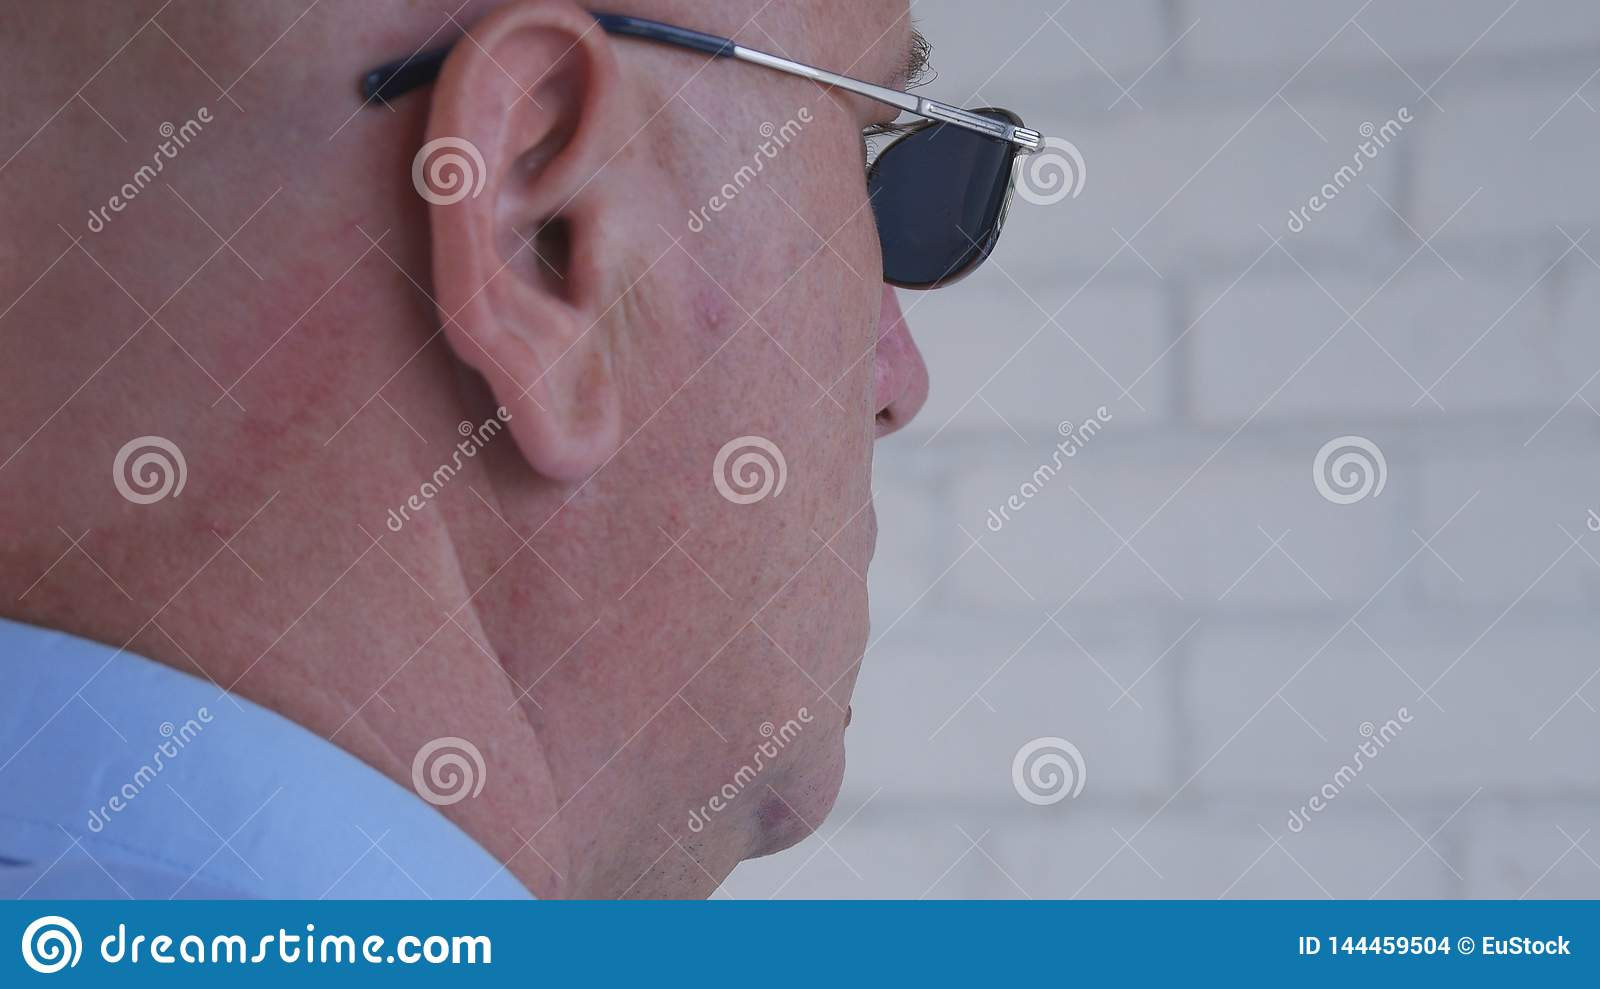 Confident Bodyguard Image Wearing Black Sunglasses Doing a Security Job